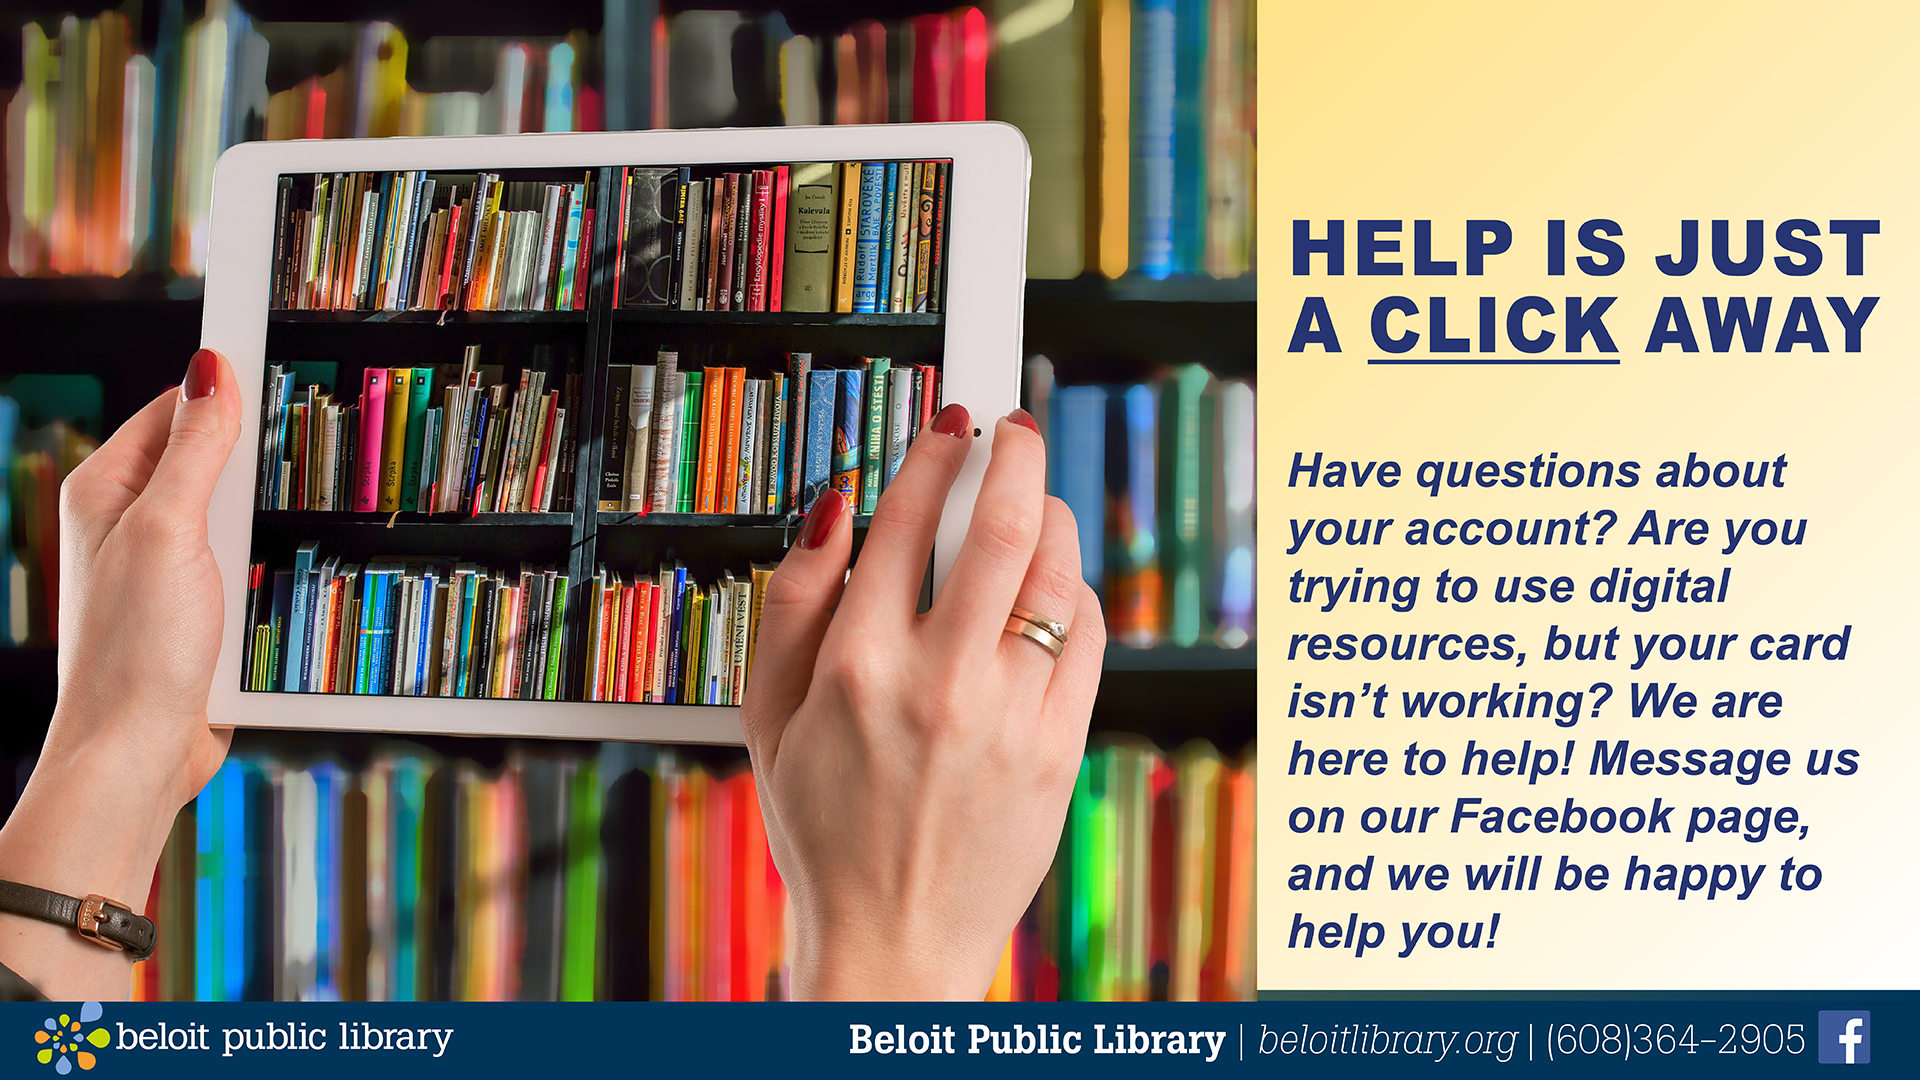 Help is just a click away. Have questions about your account? Are you trying to use digital resources, but your card isn't working? We are here to help! Message us on our Facebook page, and we will be happy to help you!